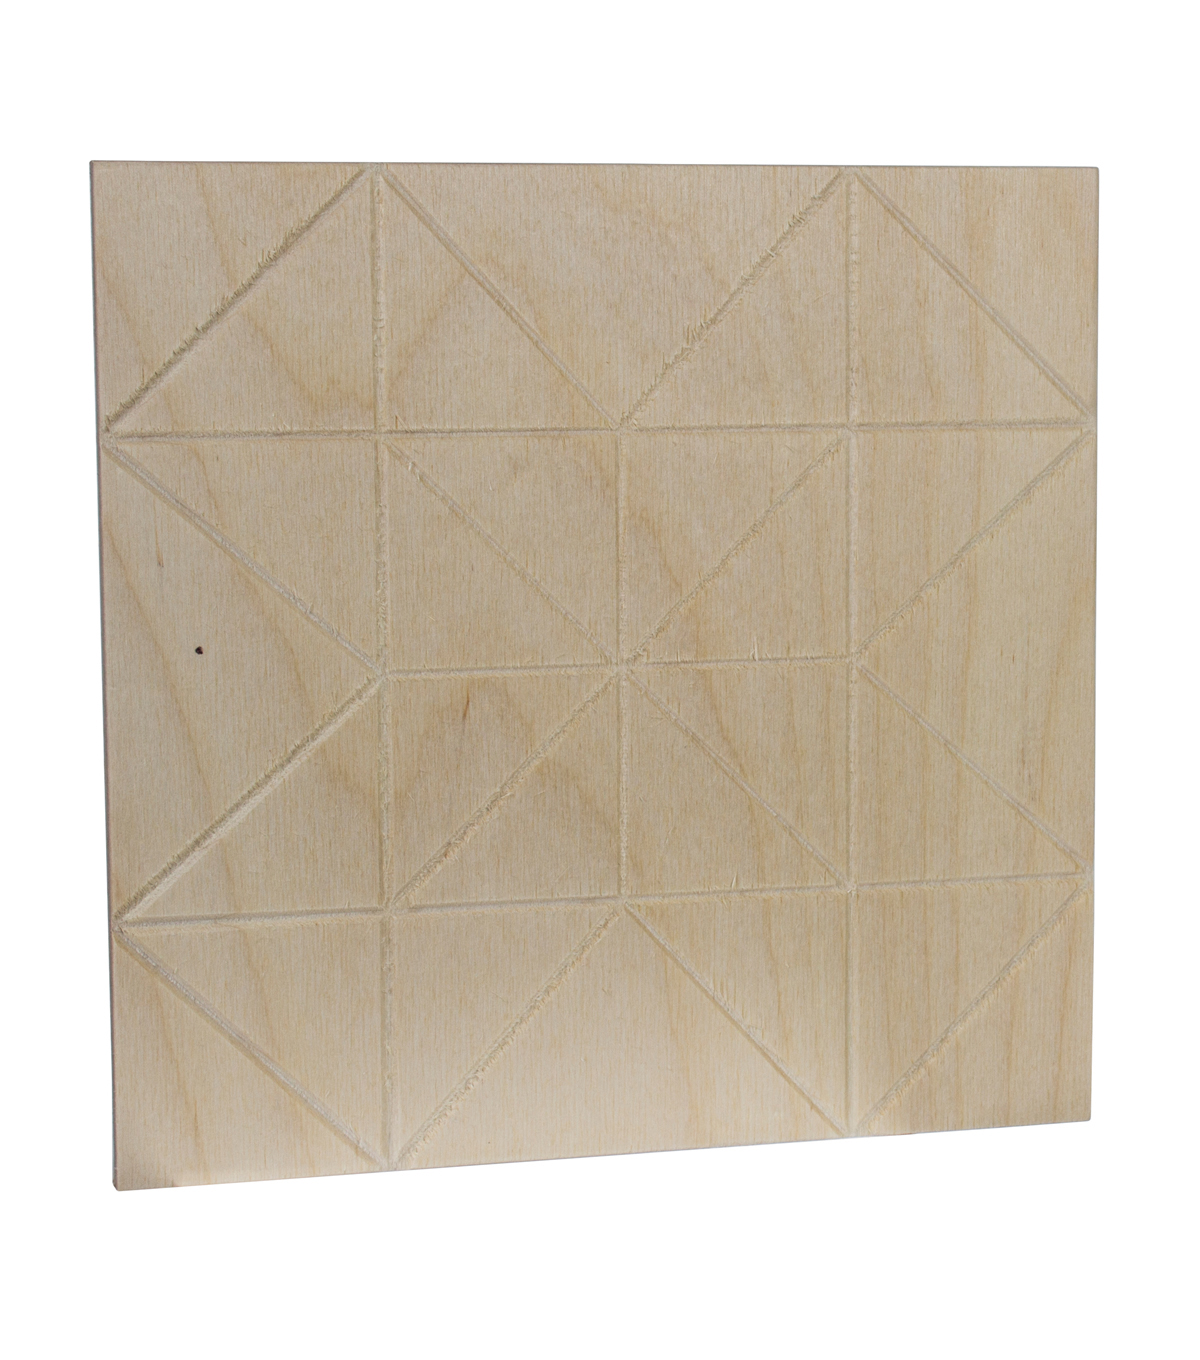 Unfinished Etched Wood Surface 8X8\u0027\u0027-Quilt Triangles